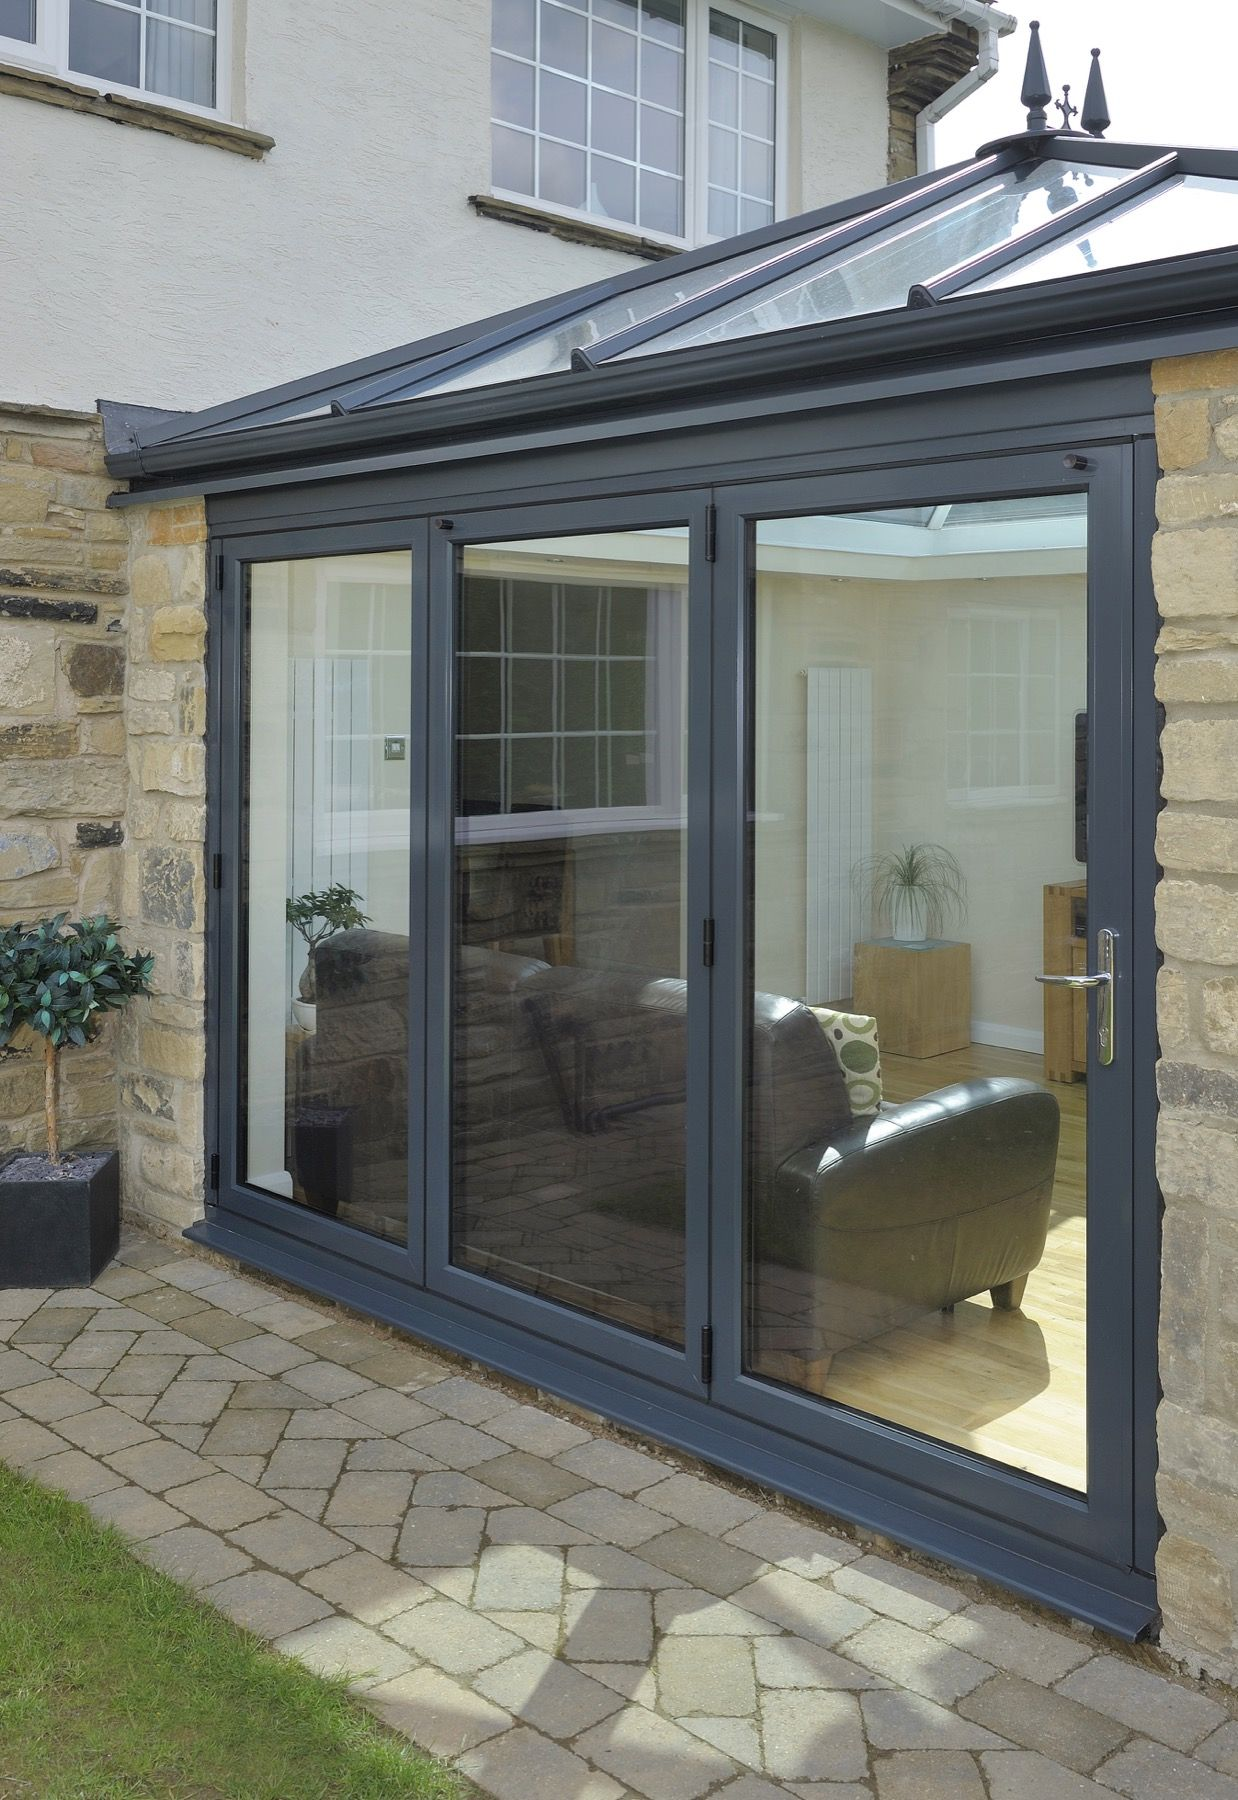 Gable end window ideas  bifolding doors in hampshire  get a free quote today  wessex